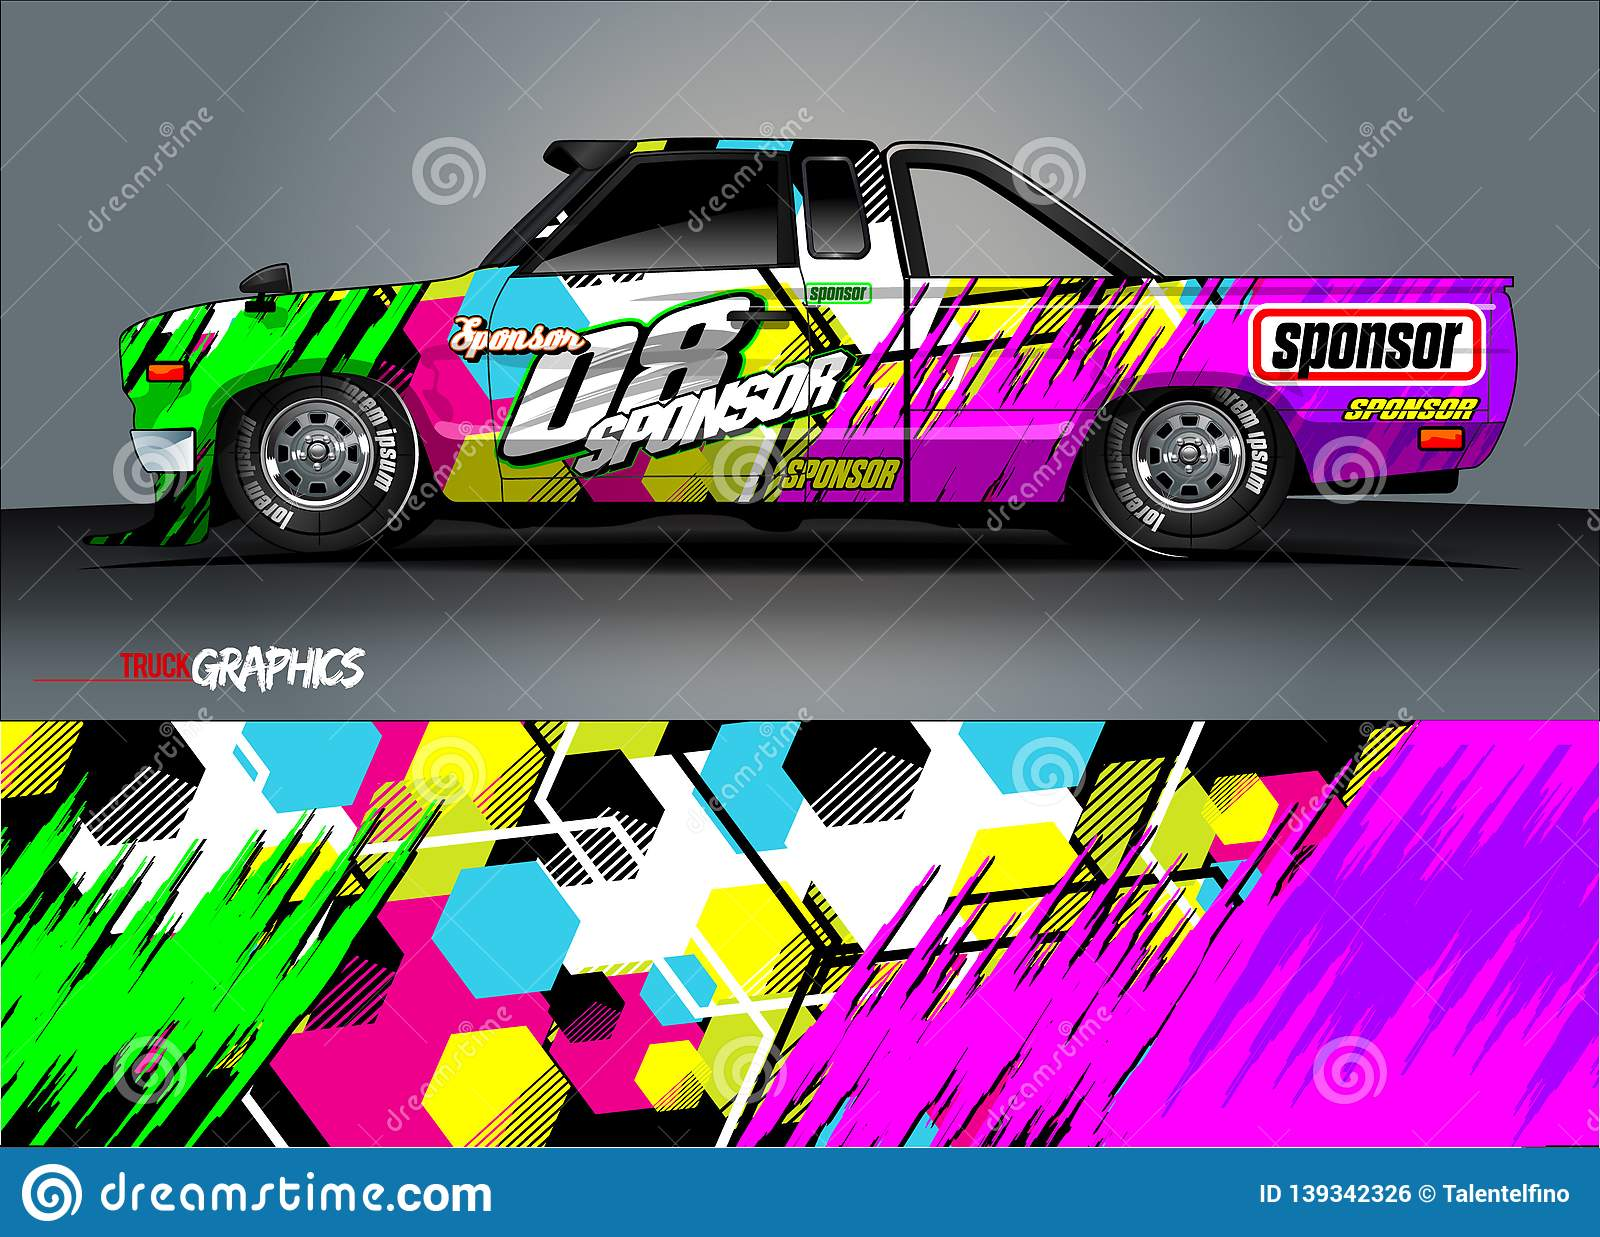 d0dfbd7447 Vehicle livery graphic . abstract grunge background design for vehicle  vinyl wrap and car branding